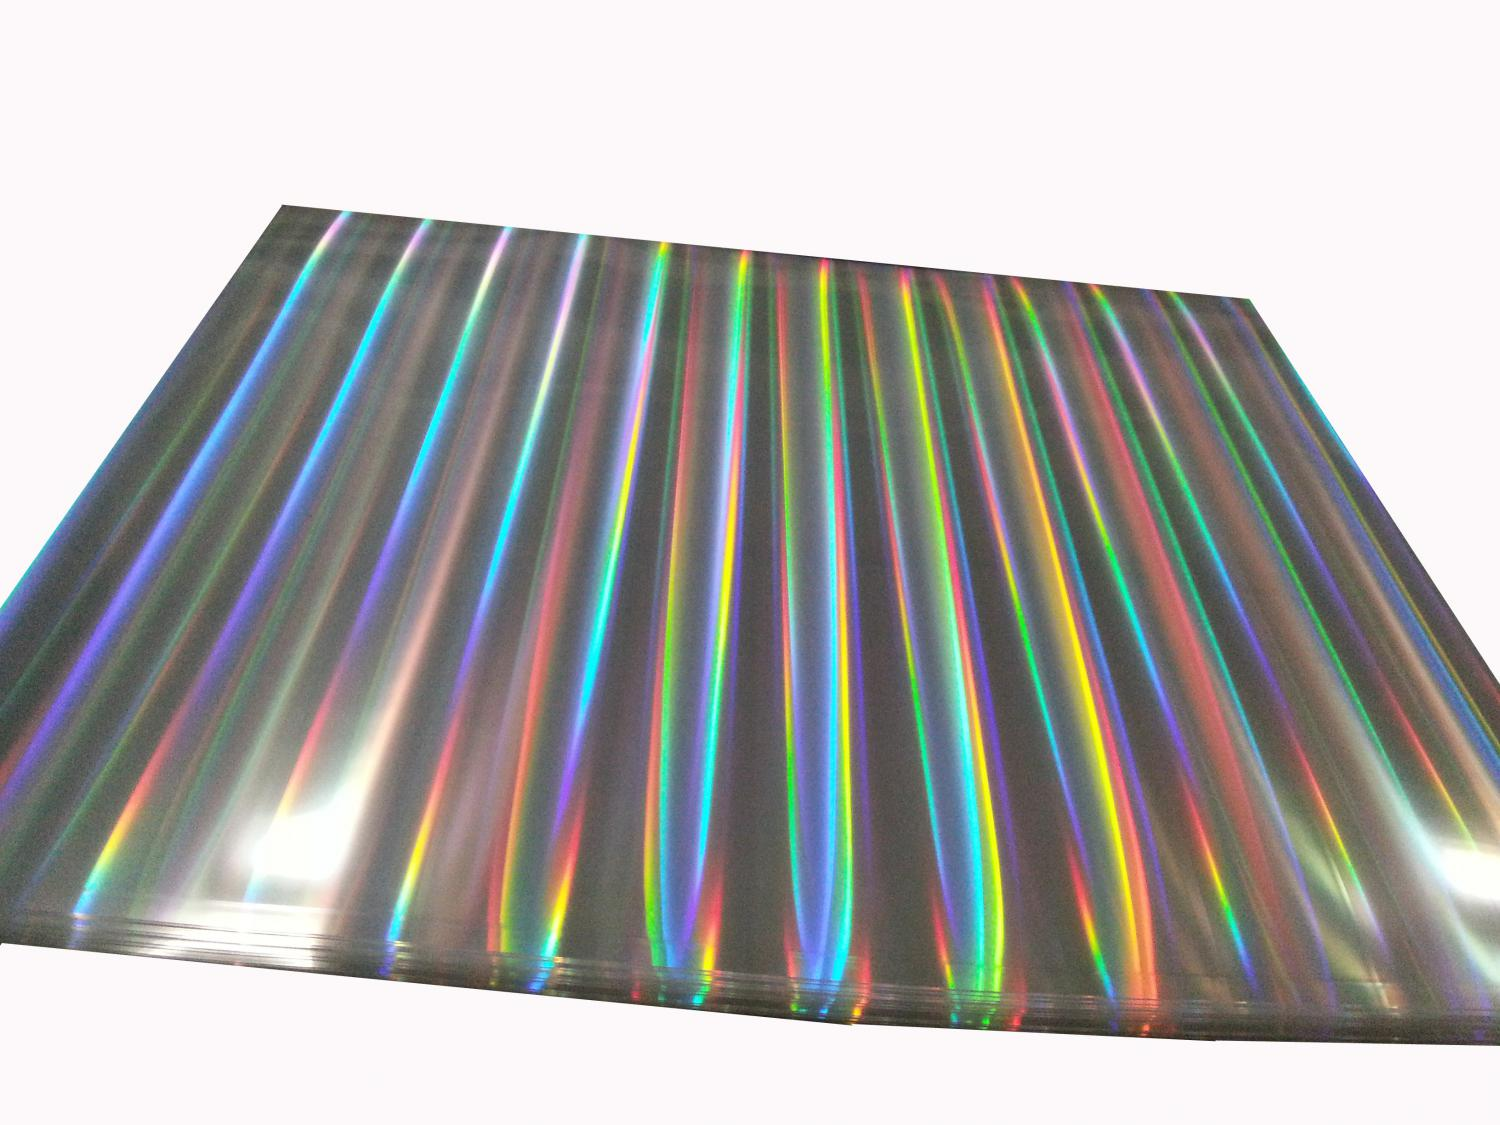 Holographic Film for Anti-Fake Packaging